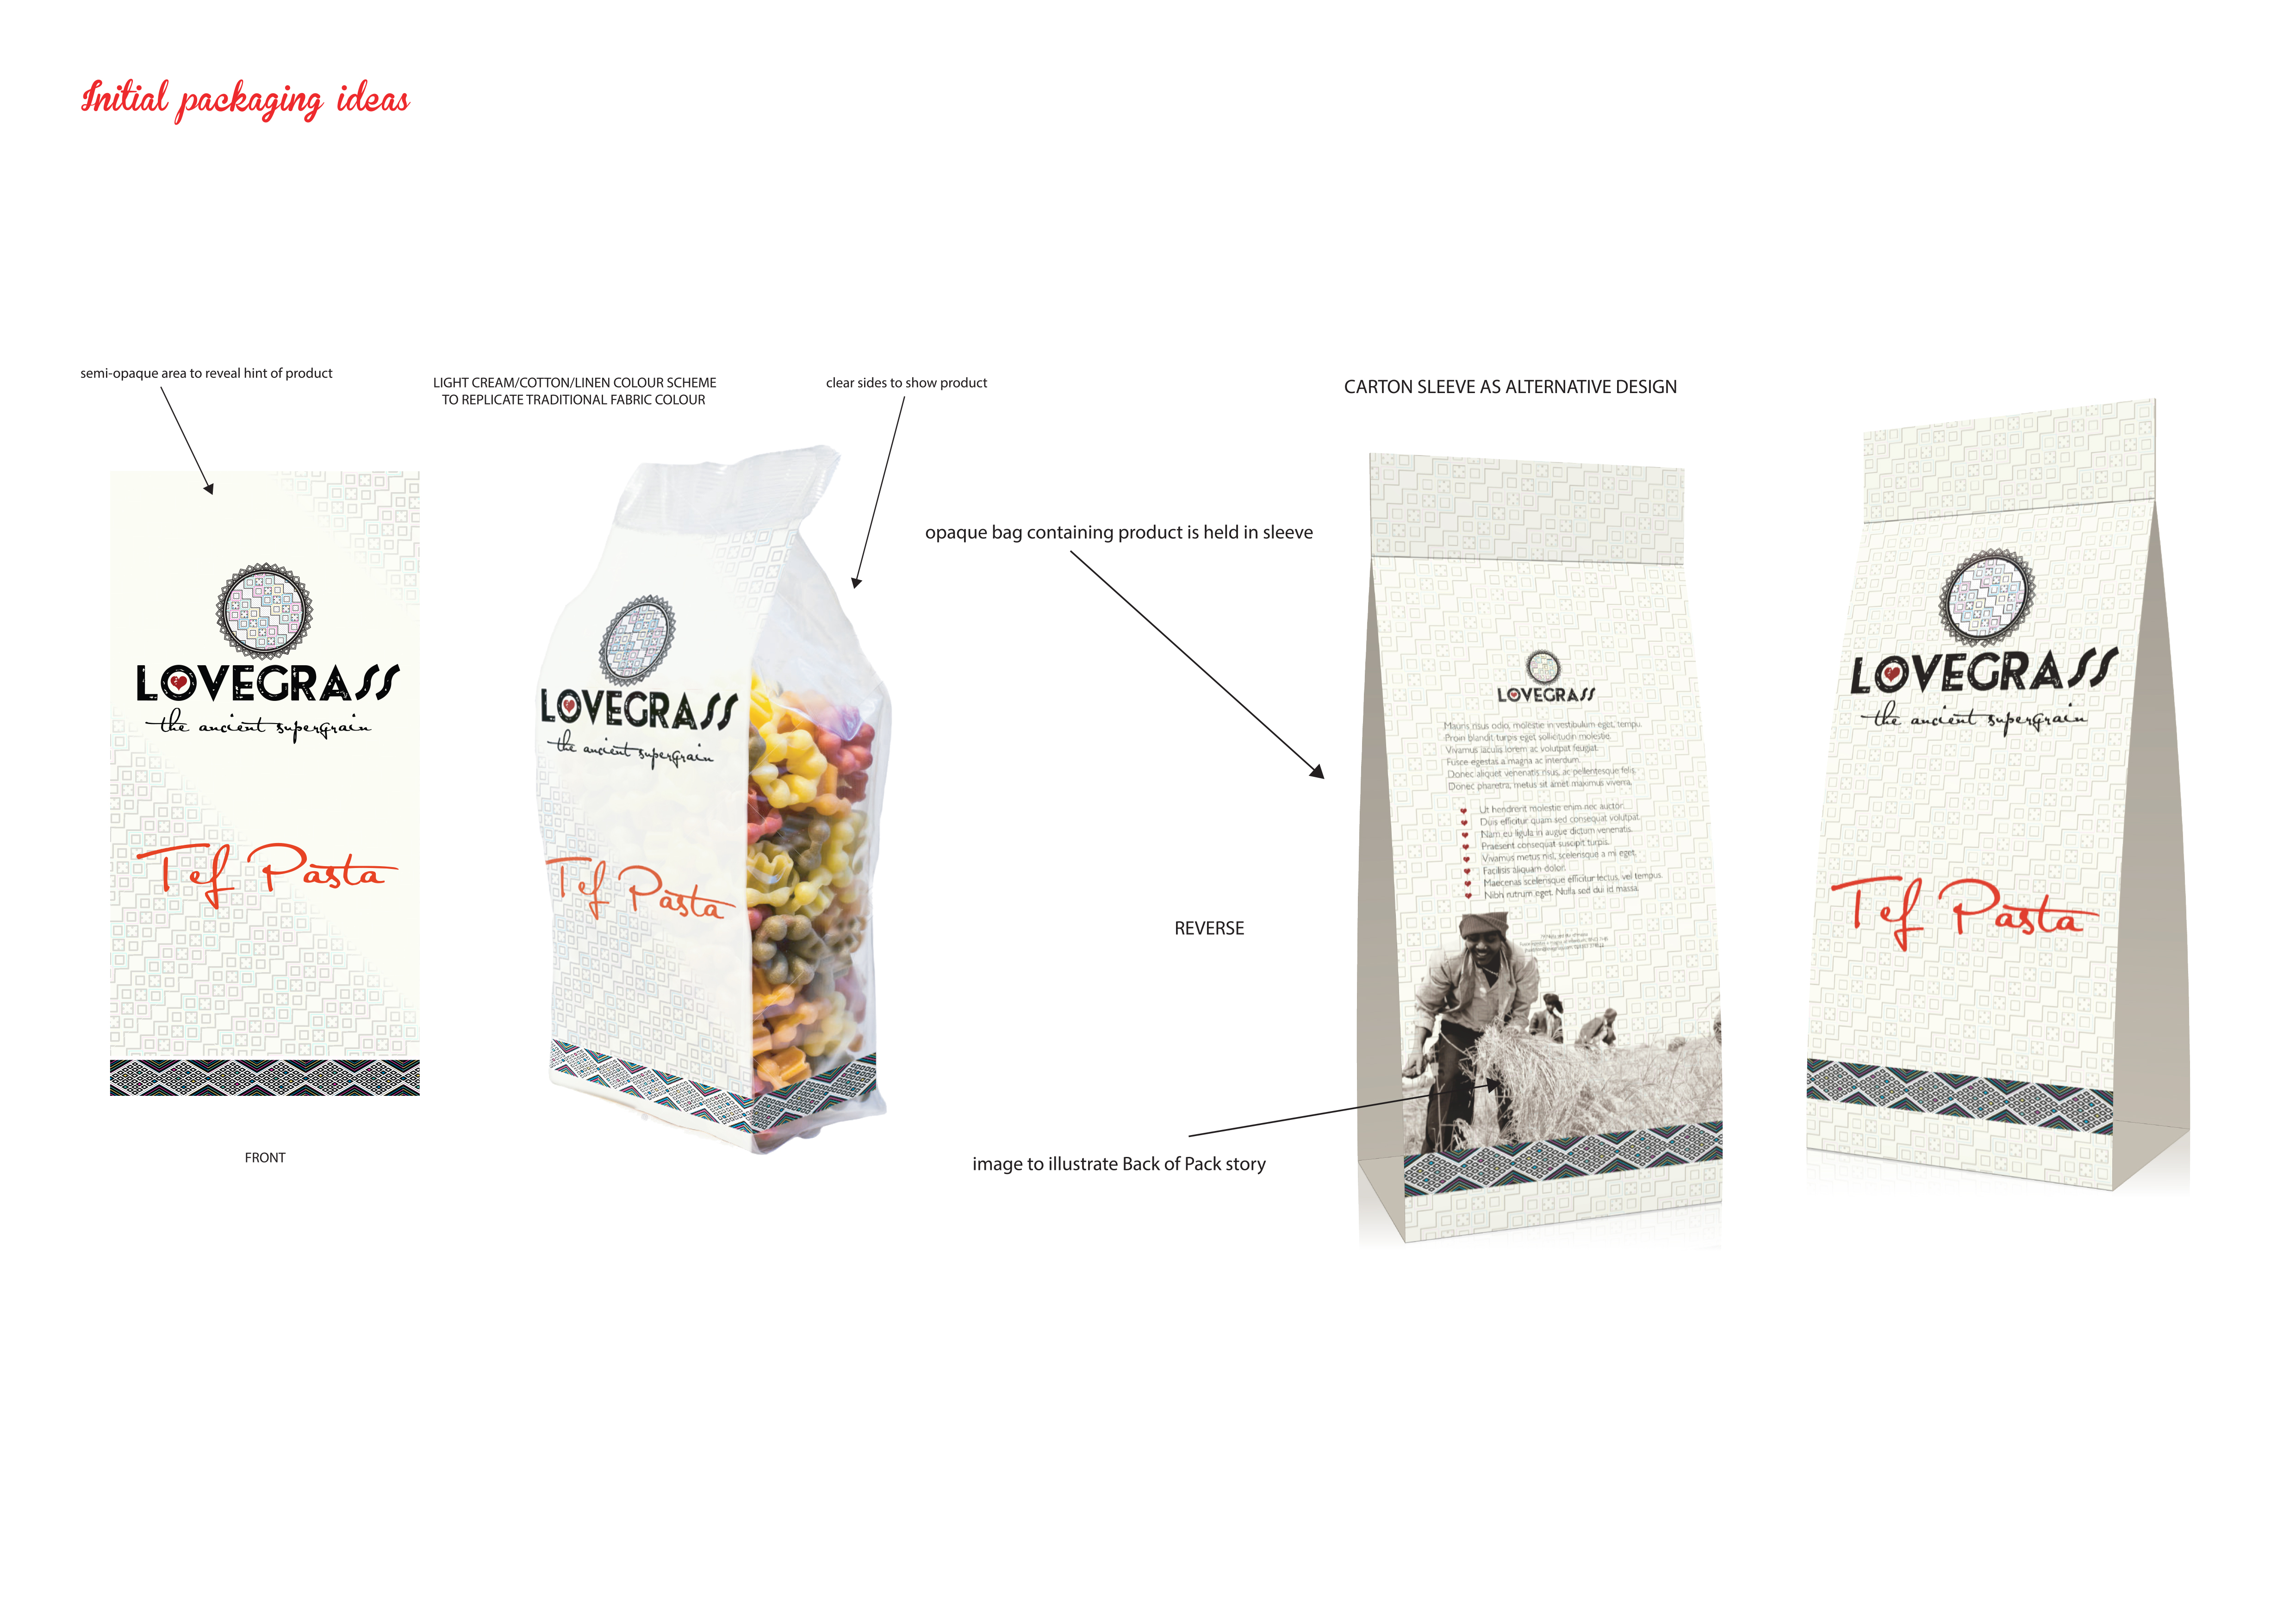 Pactivate, packaging design and production